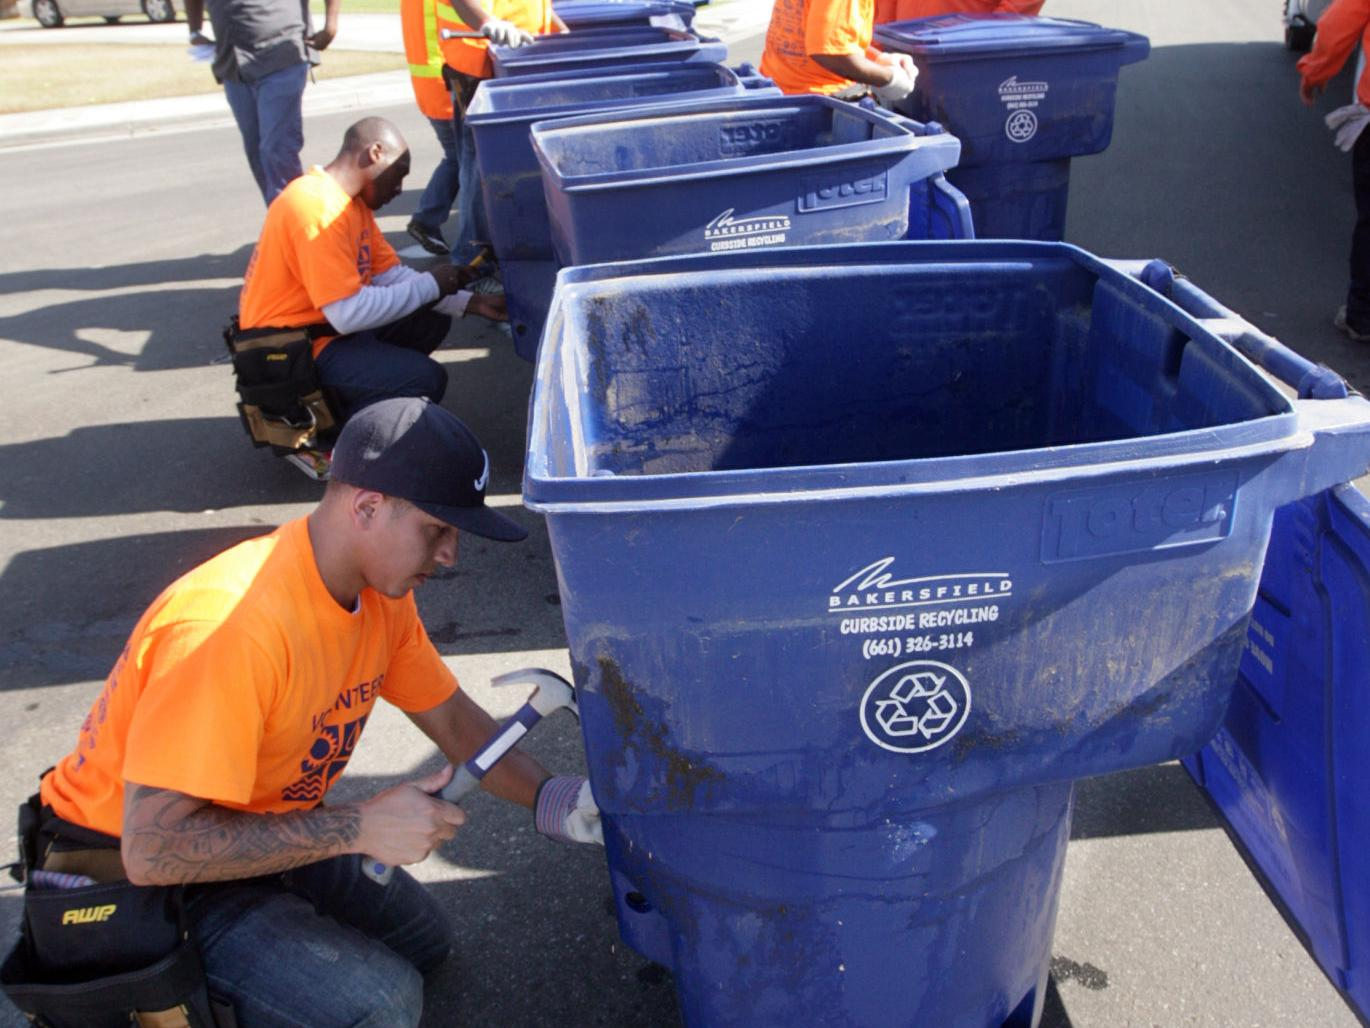 Photos of City Of Bakersfield Curbside Recycling Calendar 2021